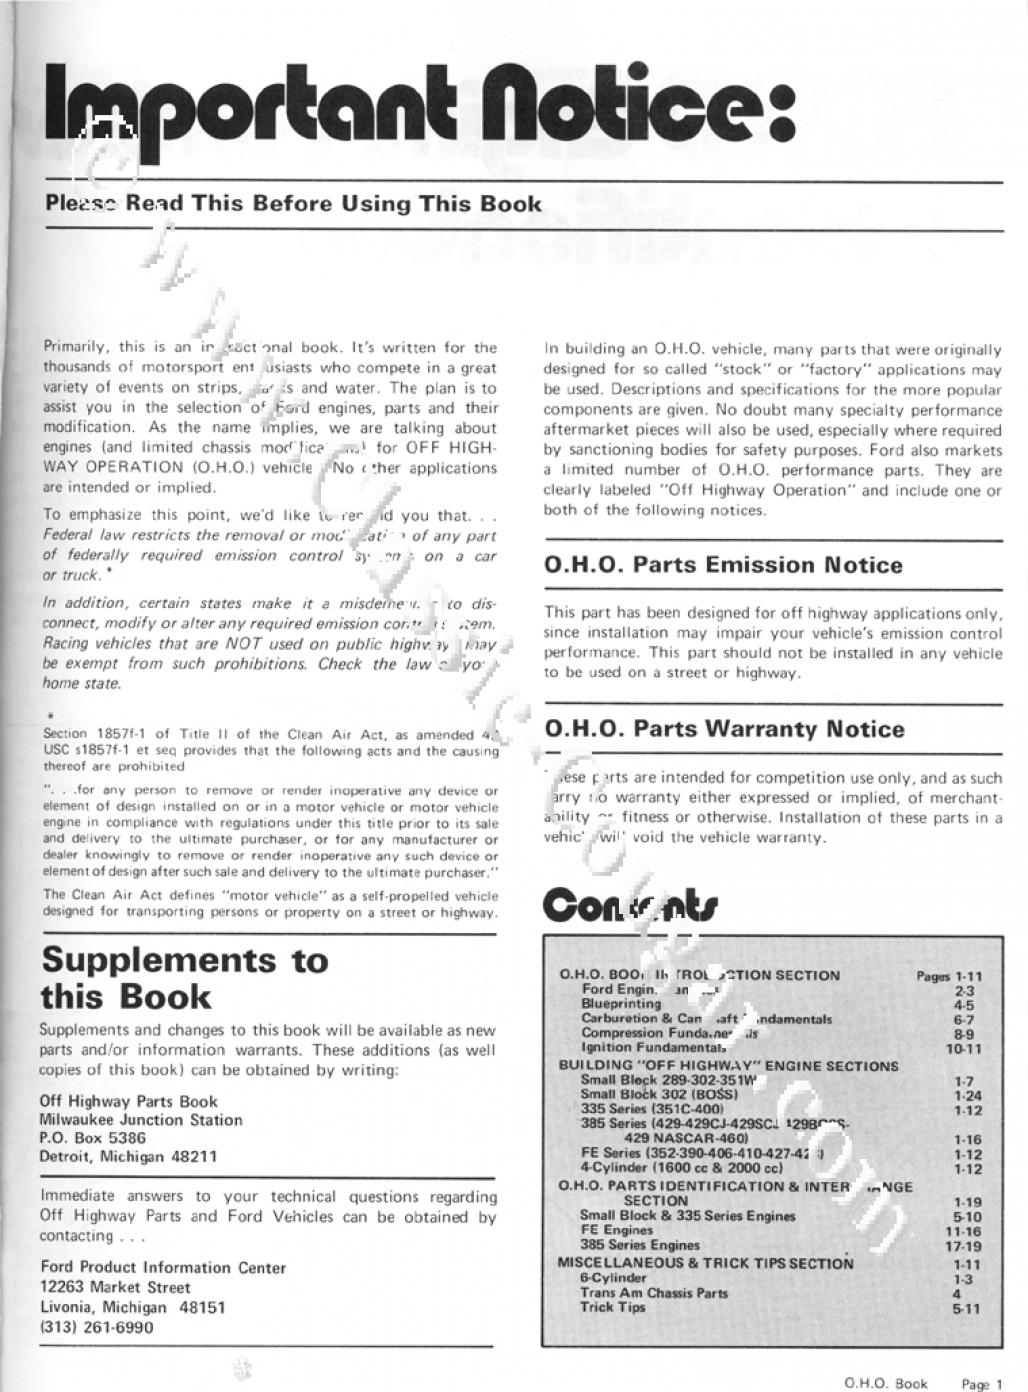 Off Highway Parts Manual - Repro ~ 1960 - 1970 Ford - Mercury - 25950